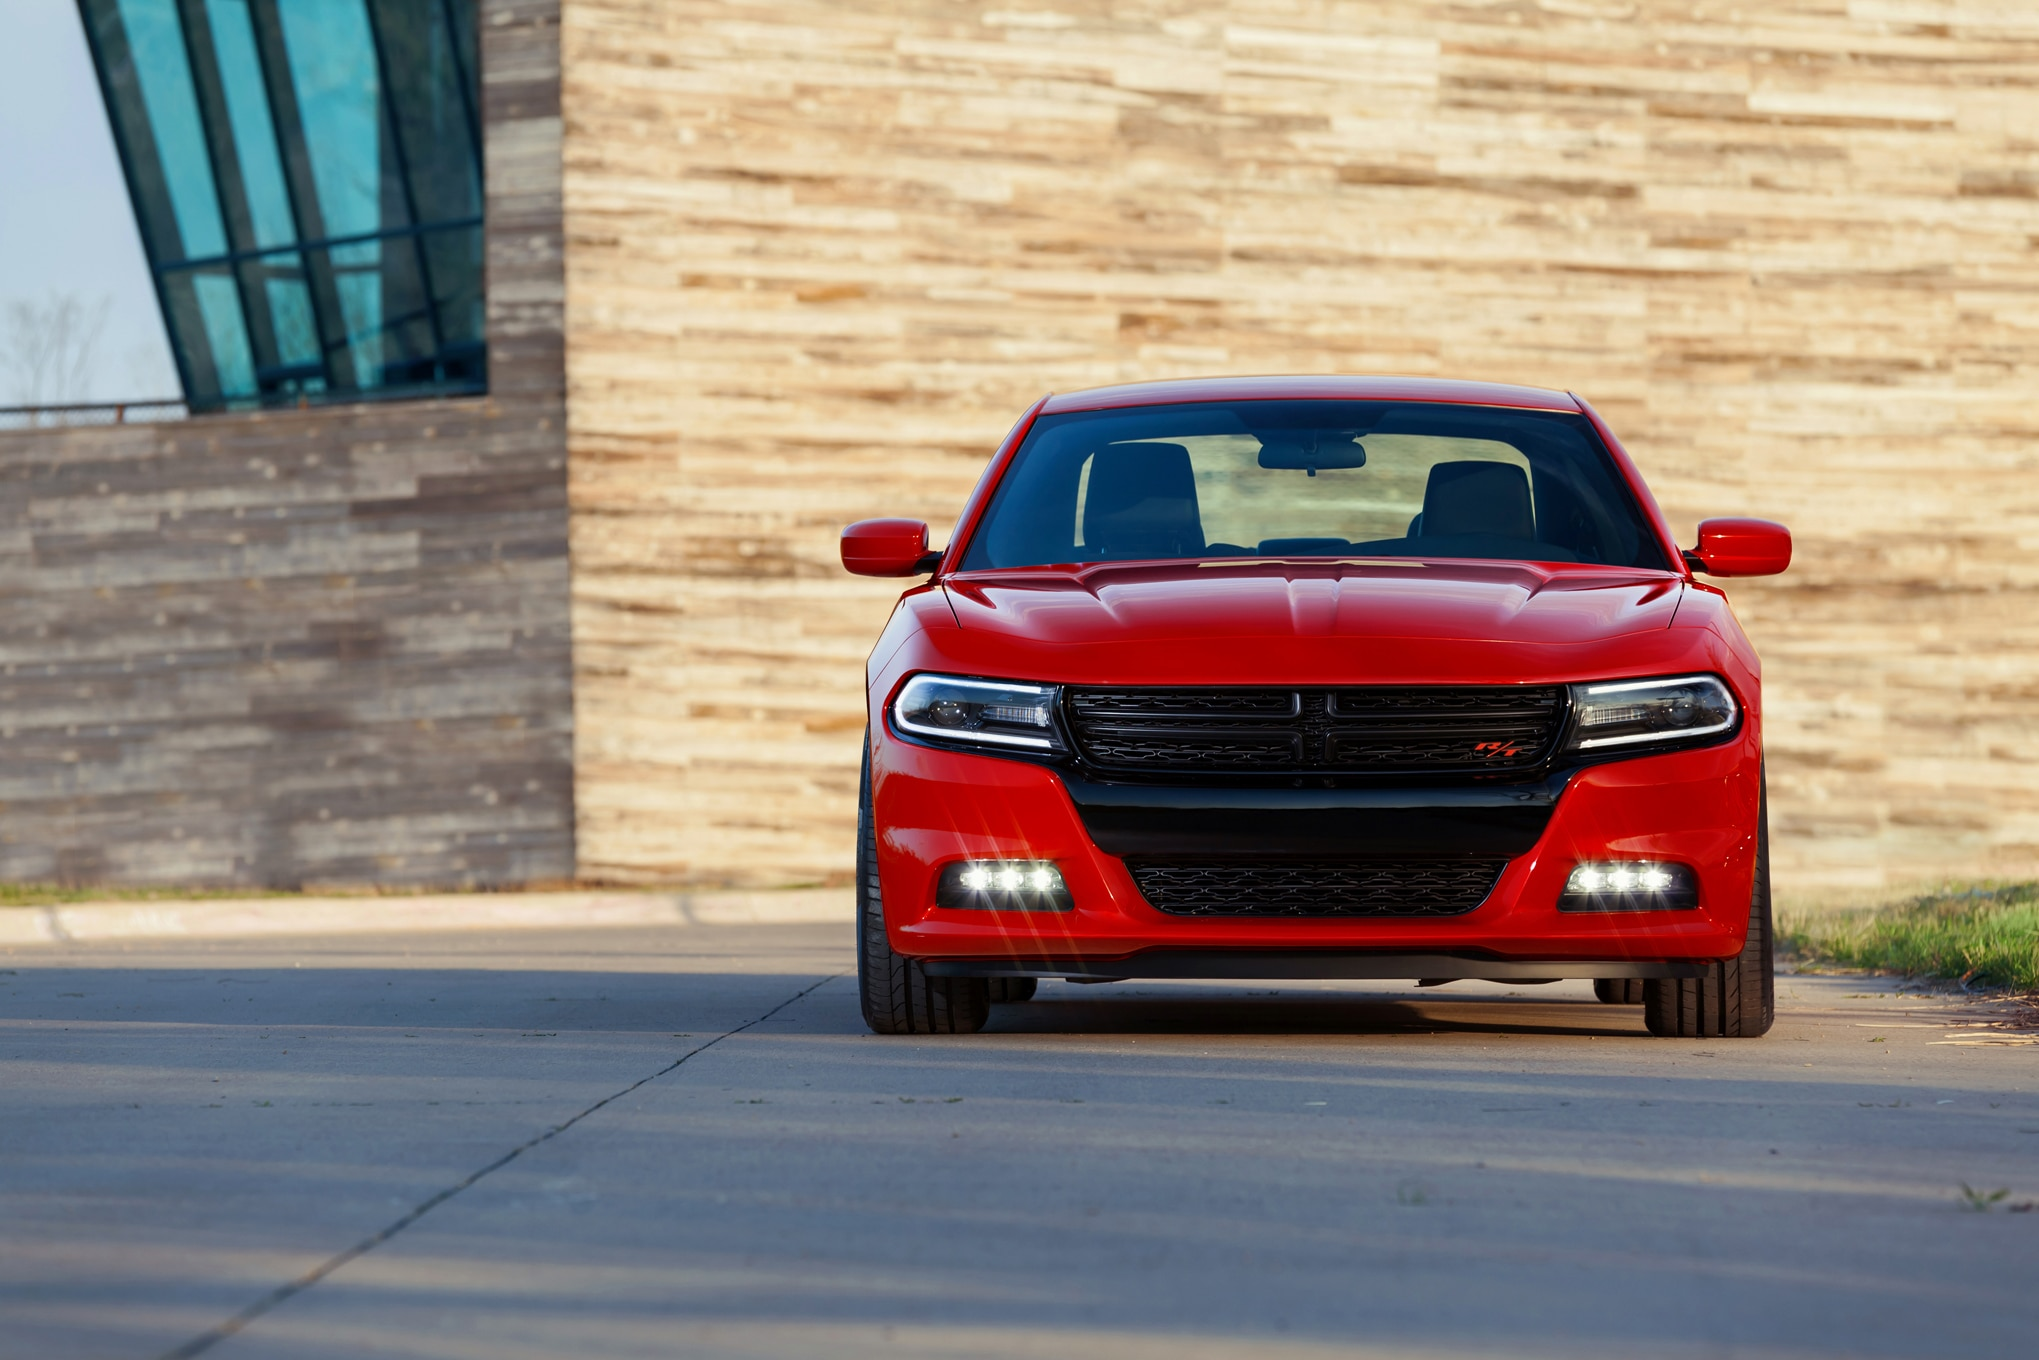 2016 Dodge Charger Rt 0 60 >> 2016 Dodge Charger R/T Scat Pack Quick Take Review | Automobile Magazine